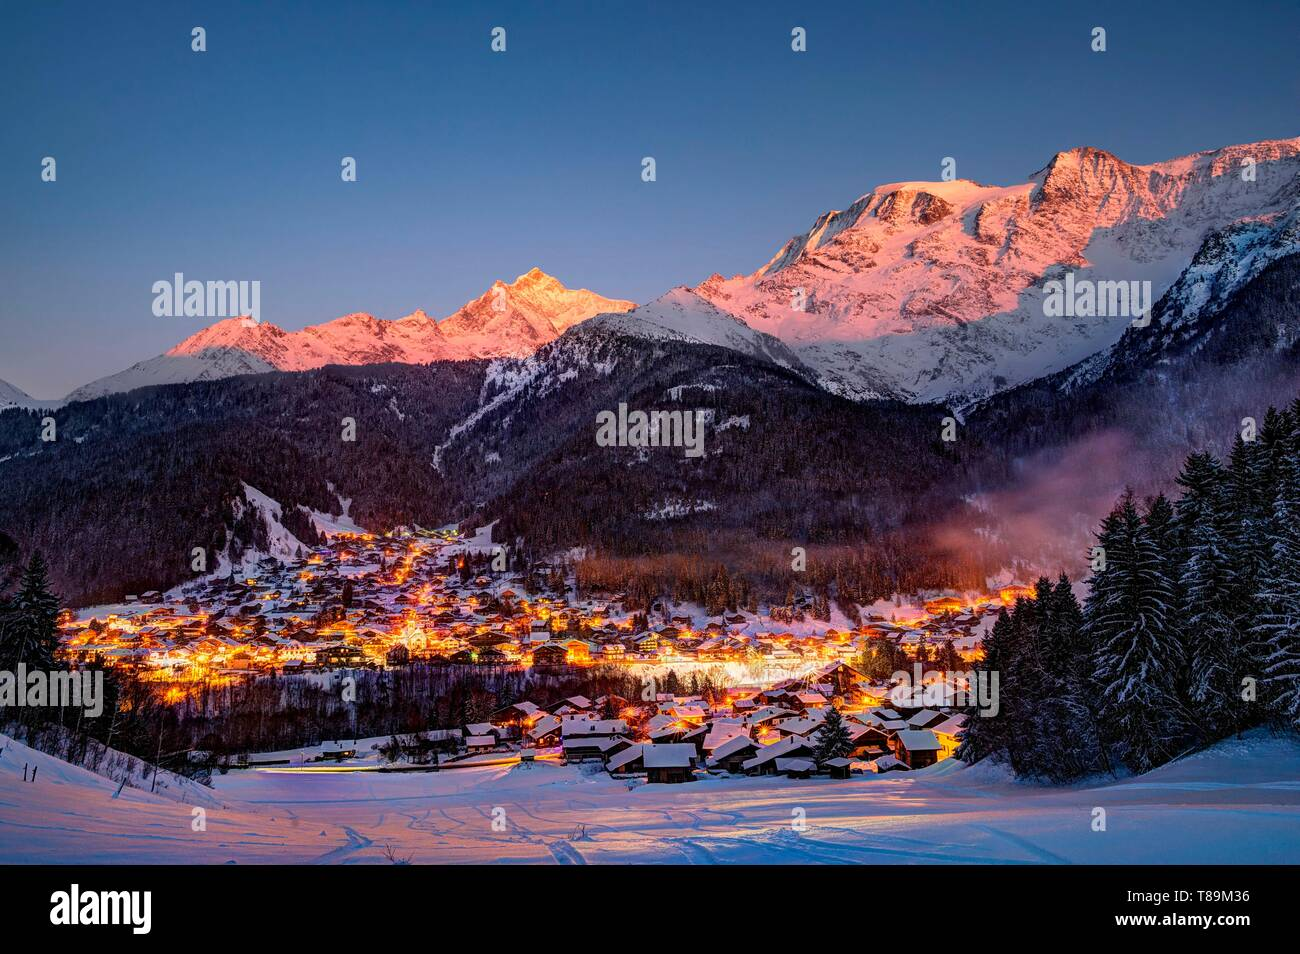 France, Haute Savoie, Massif of the Mont Blanc, the Contamines Montjoie, the overview of the village station(resort) in the twilight and sunset on the needle of Bionnassay and the domes of Miage - Stock Image